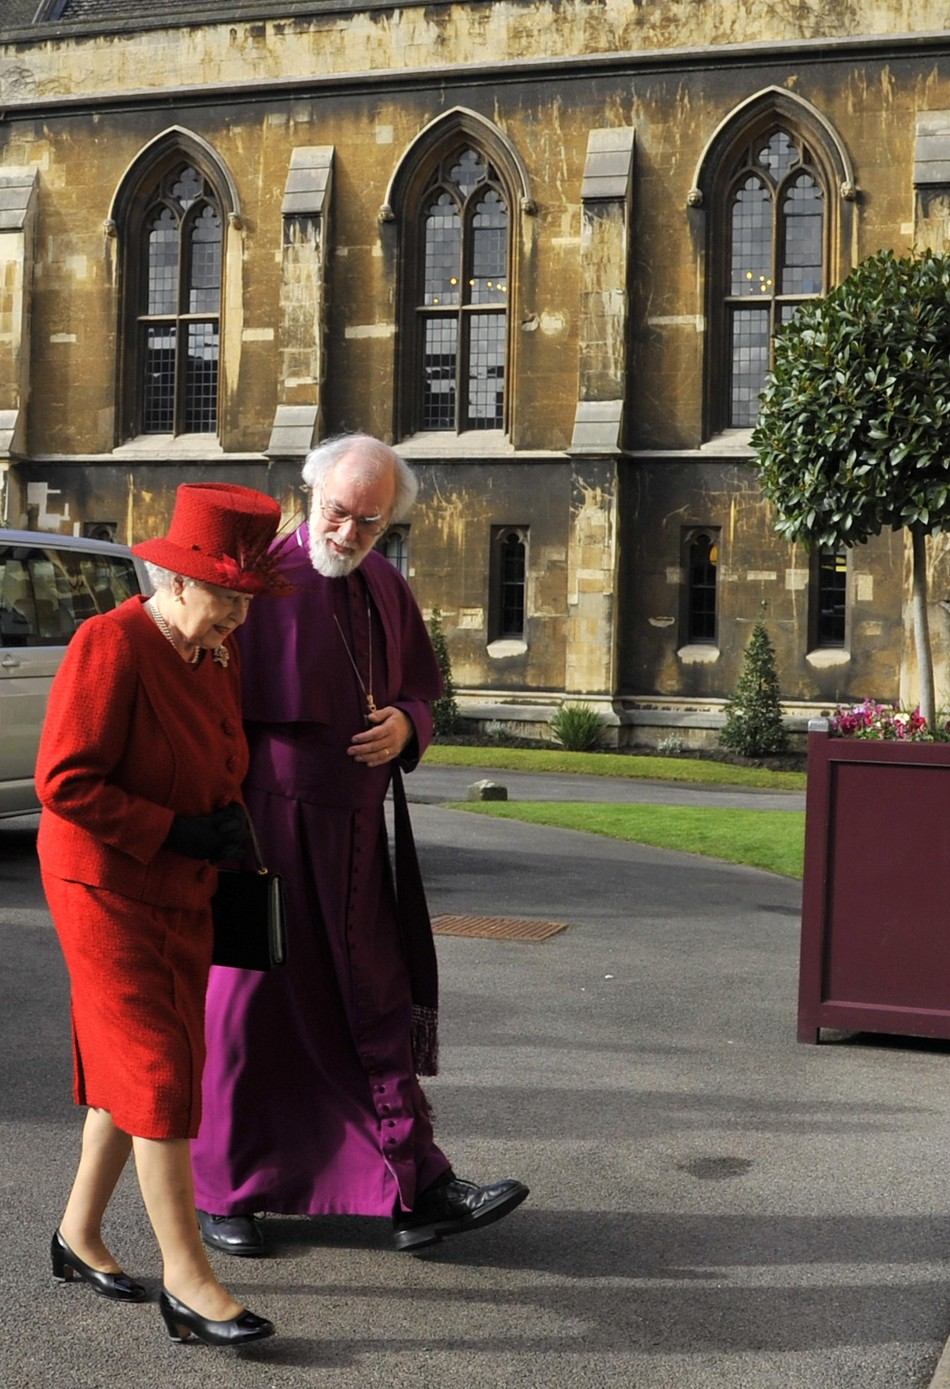 The concept of our established Church is occasionally misunderstood says Queen Elizabeth